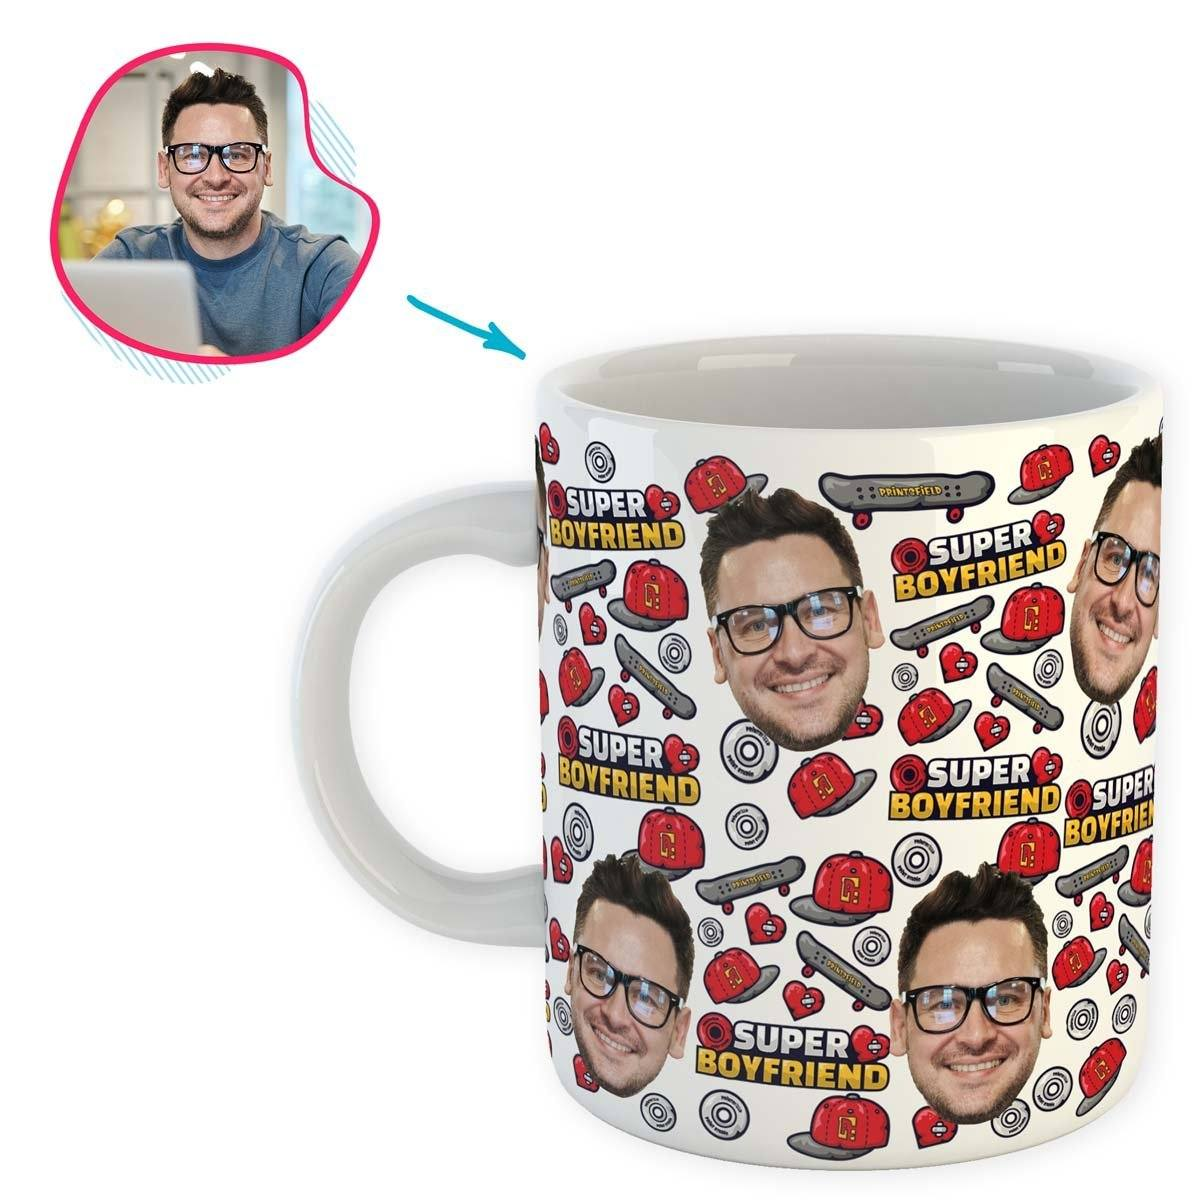 White Boyfriend personalized mug with photo of face printed on it